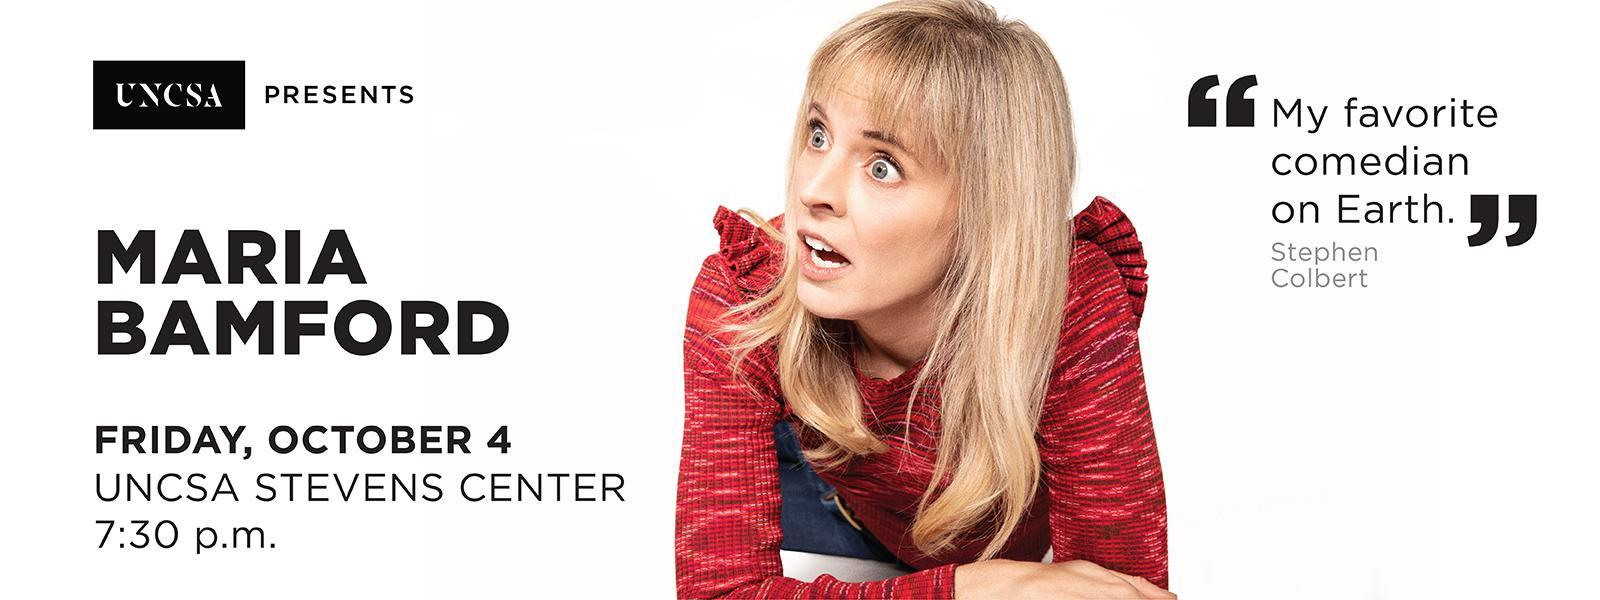 Maria Bamford, a stand-up comedian, actress and writer, whose iconically surrealist comedy toys with matters of family, anxiety and depression.>>BUY TICKETS